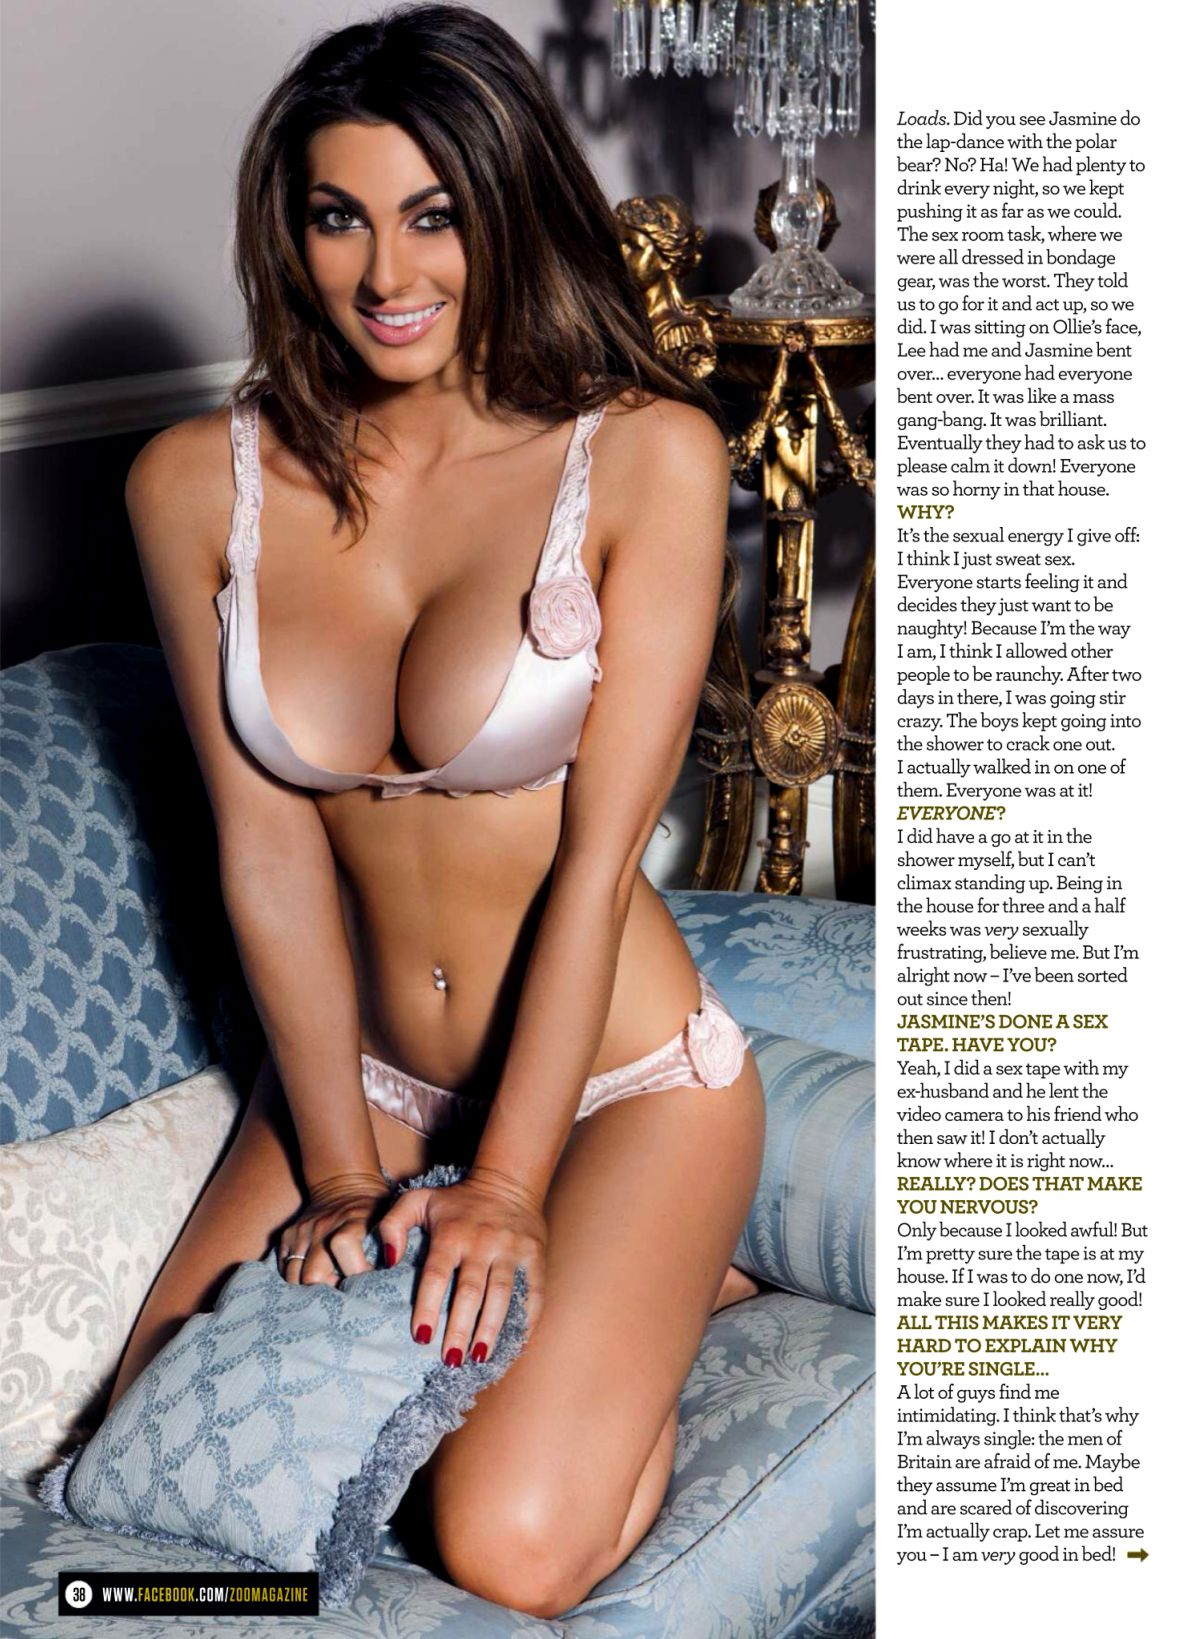 luisa-zissman-in-zoo-magazine-20th-february-2014-issue_7.jpg - 334.88 KB